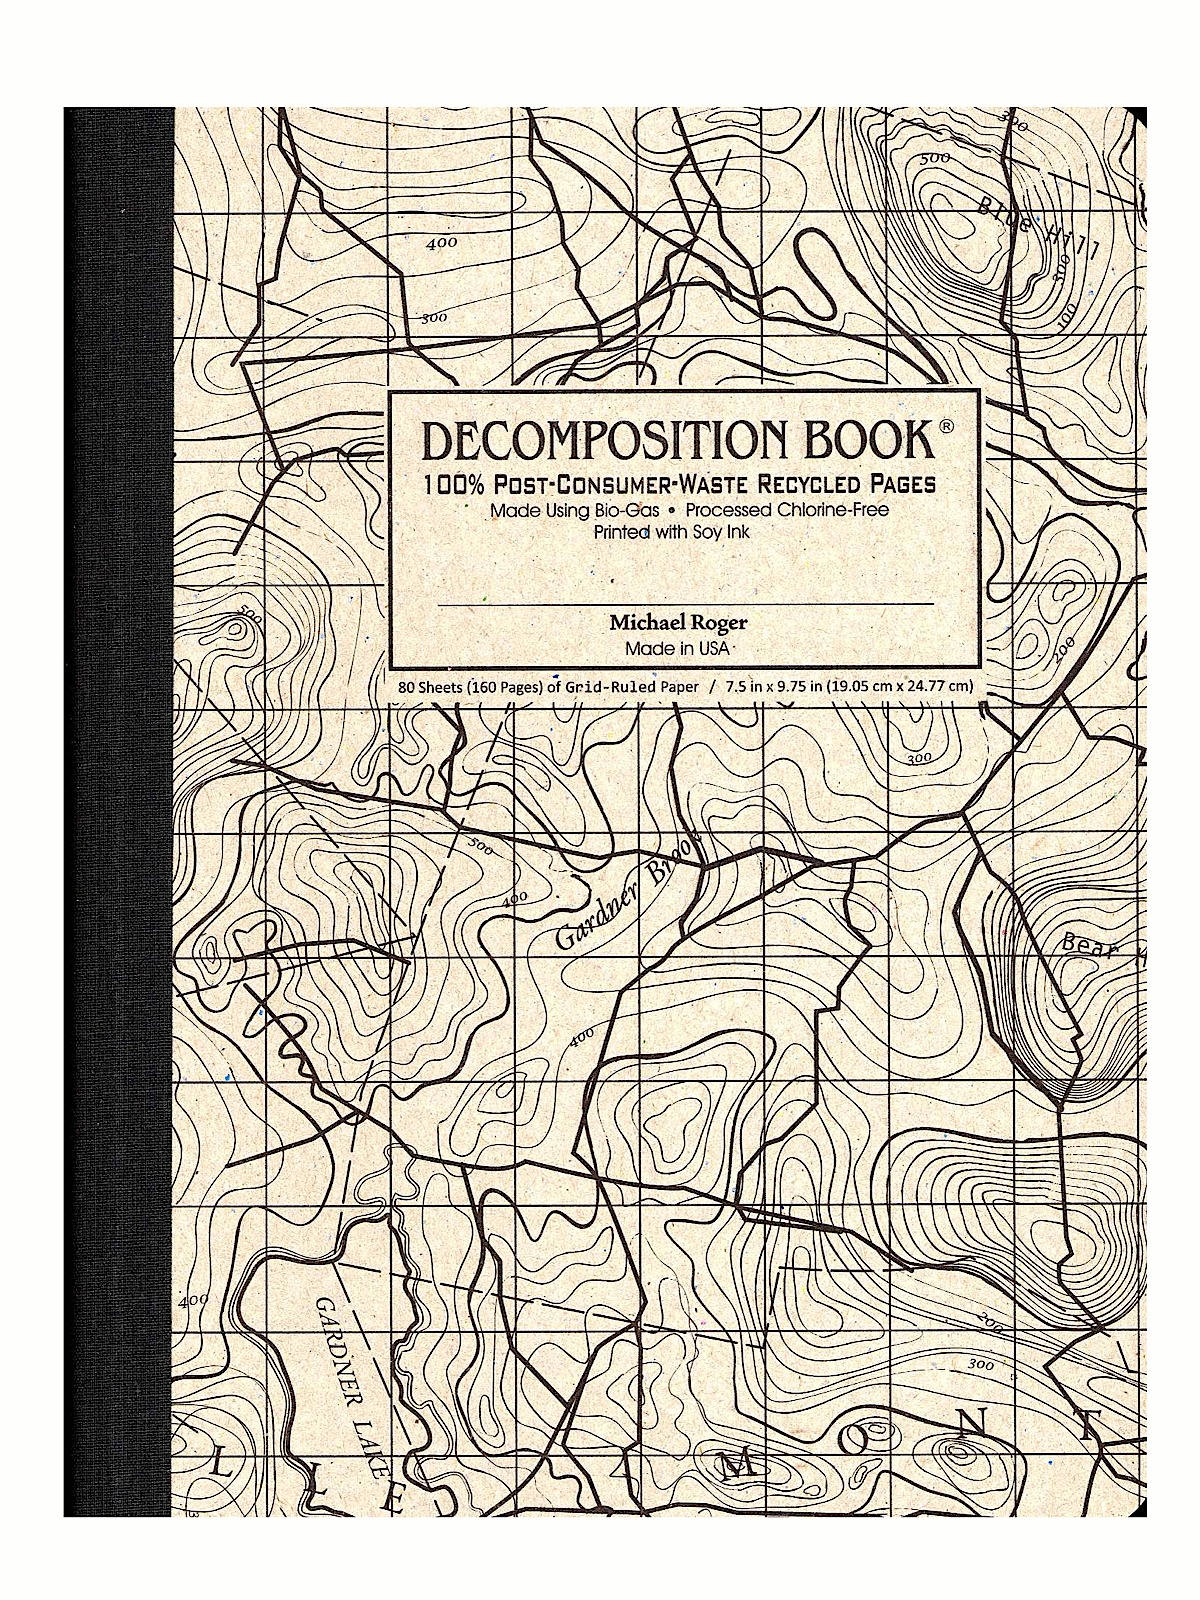 Decomposition Book Topo Map - 228b104831cc045 , Decomposition-Book-Topo-Map-13708576 , Decomposition Book Topo Map , Array , 13708576 , Gift Ideas , 46940